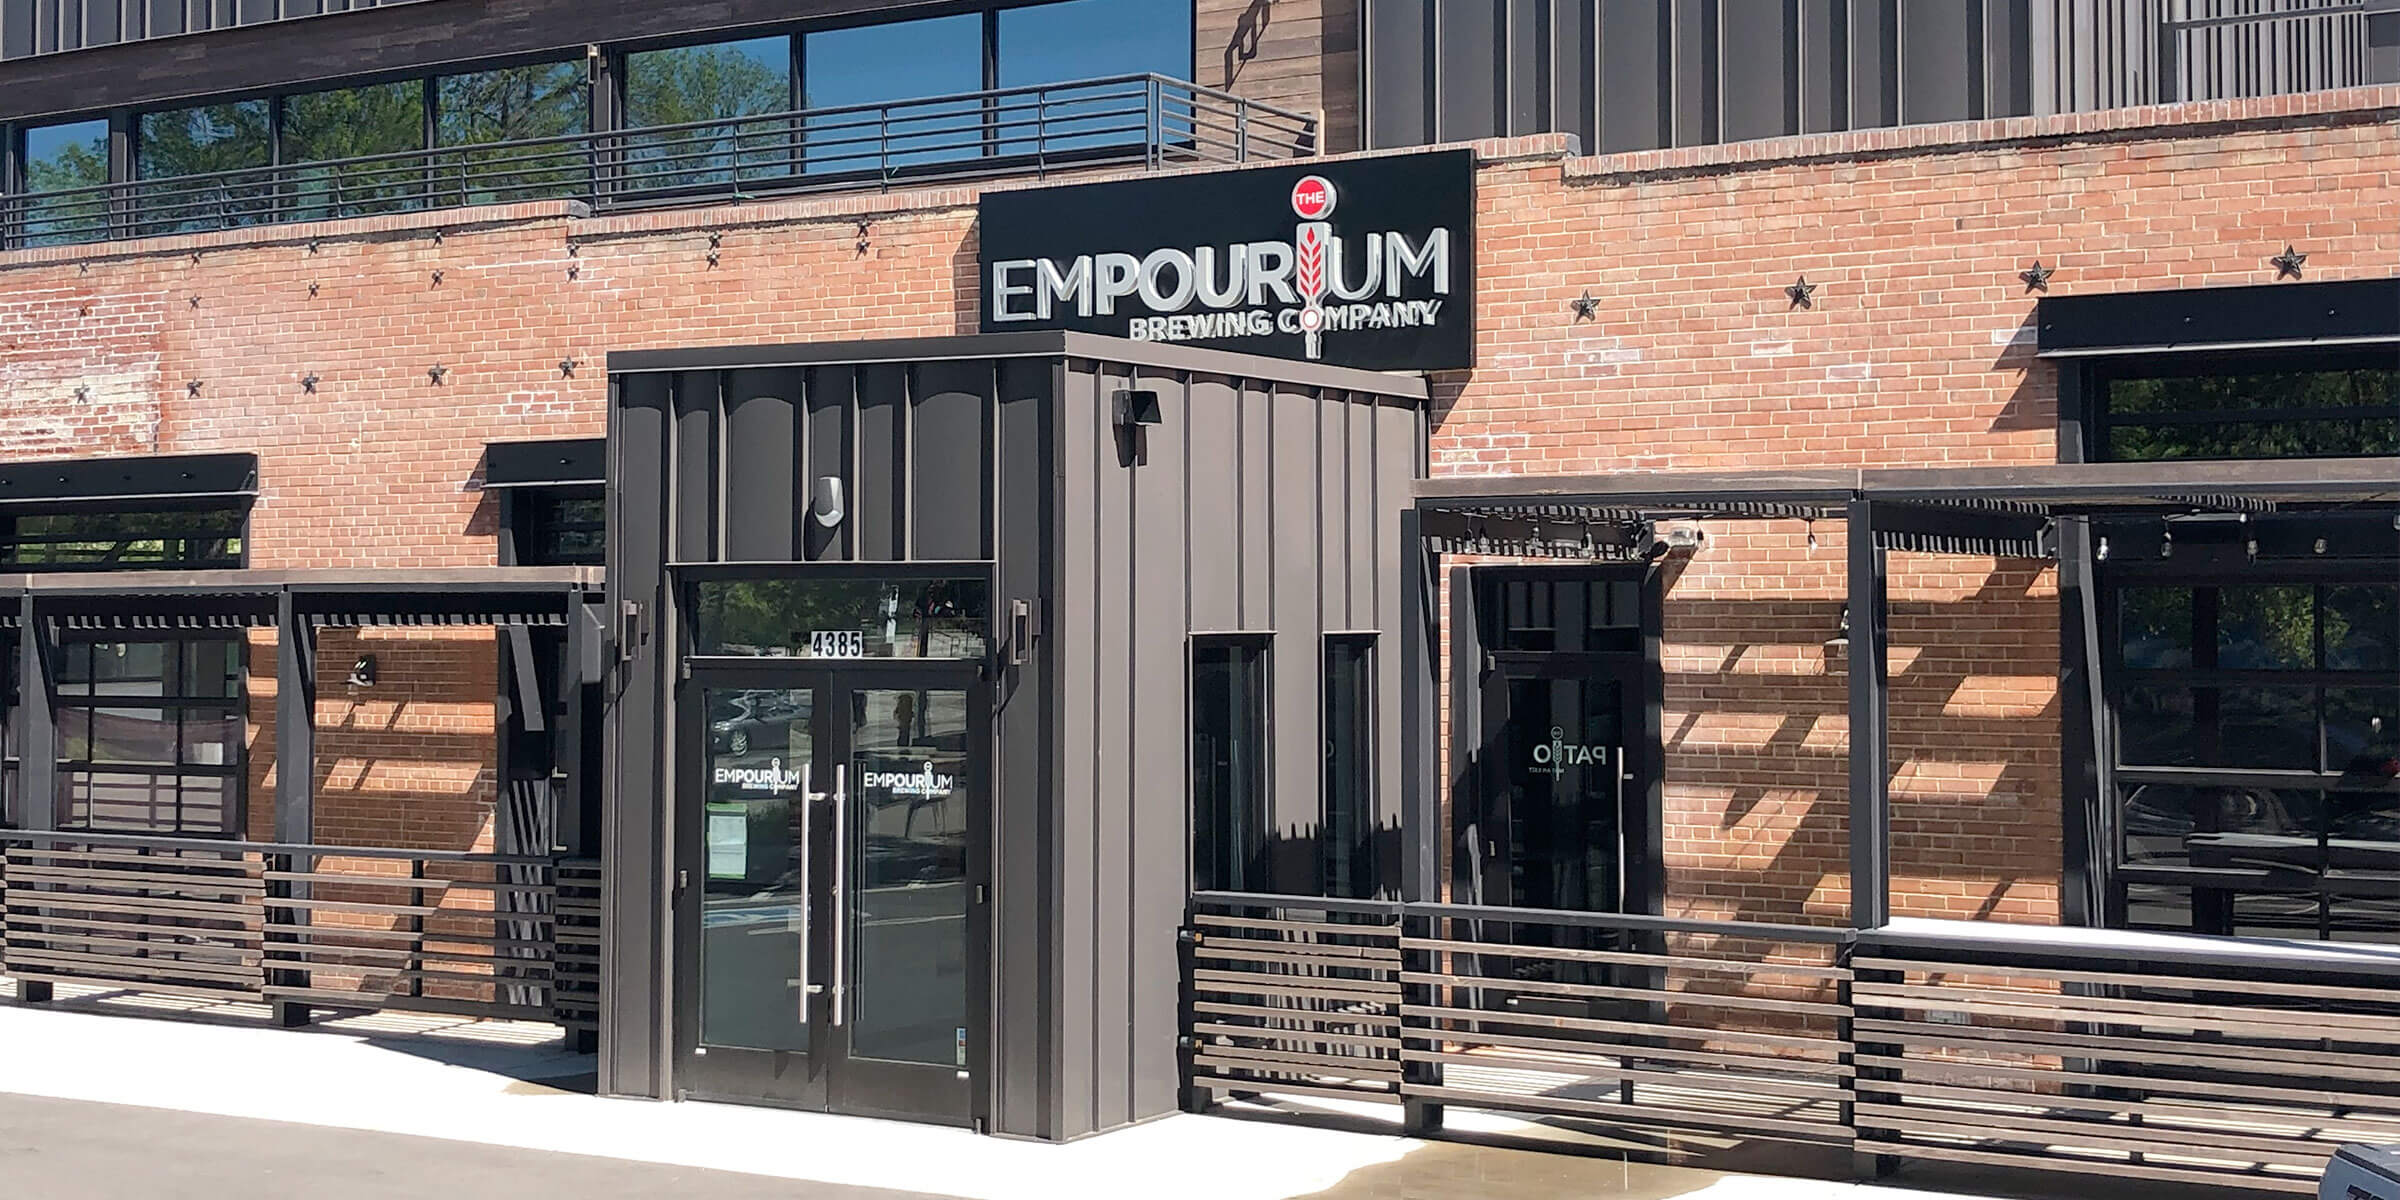 Outside the entrance to The Empourium Brewing Company in Denver, Colorado